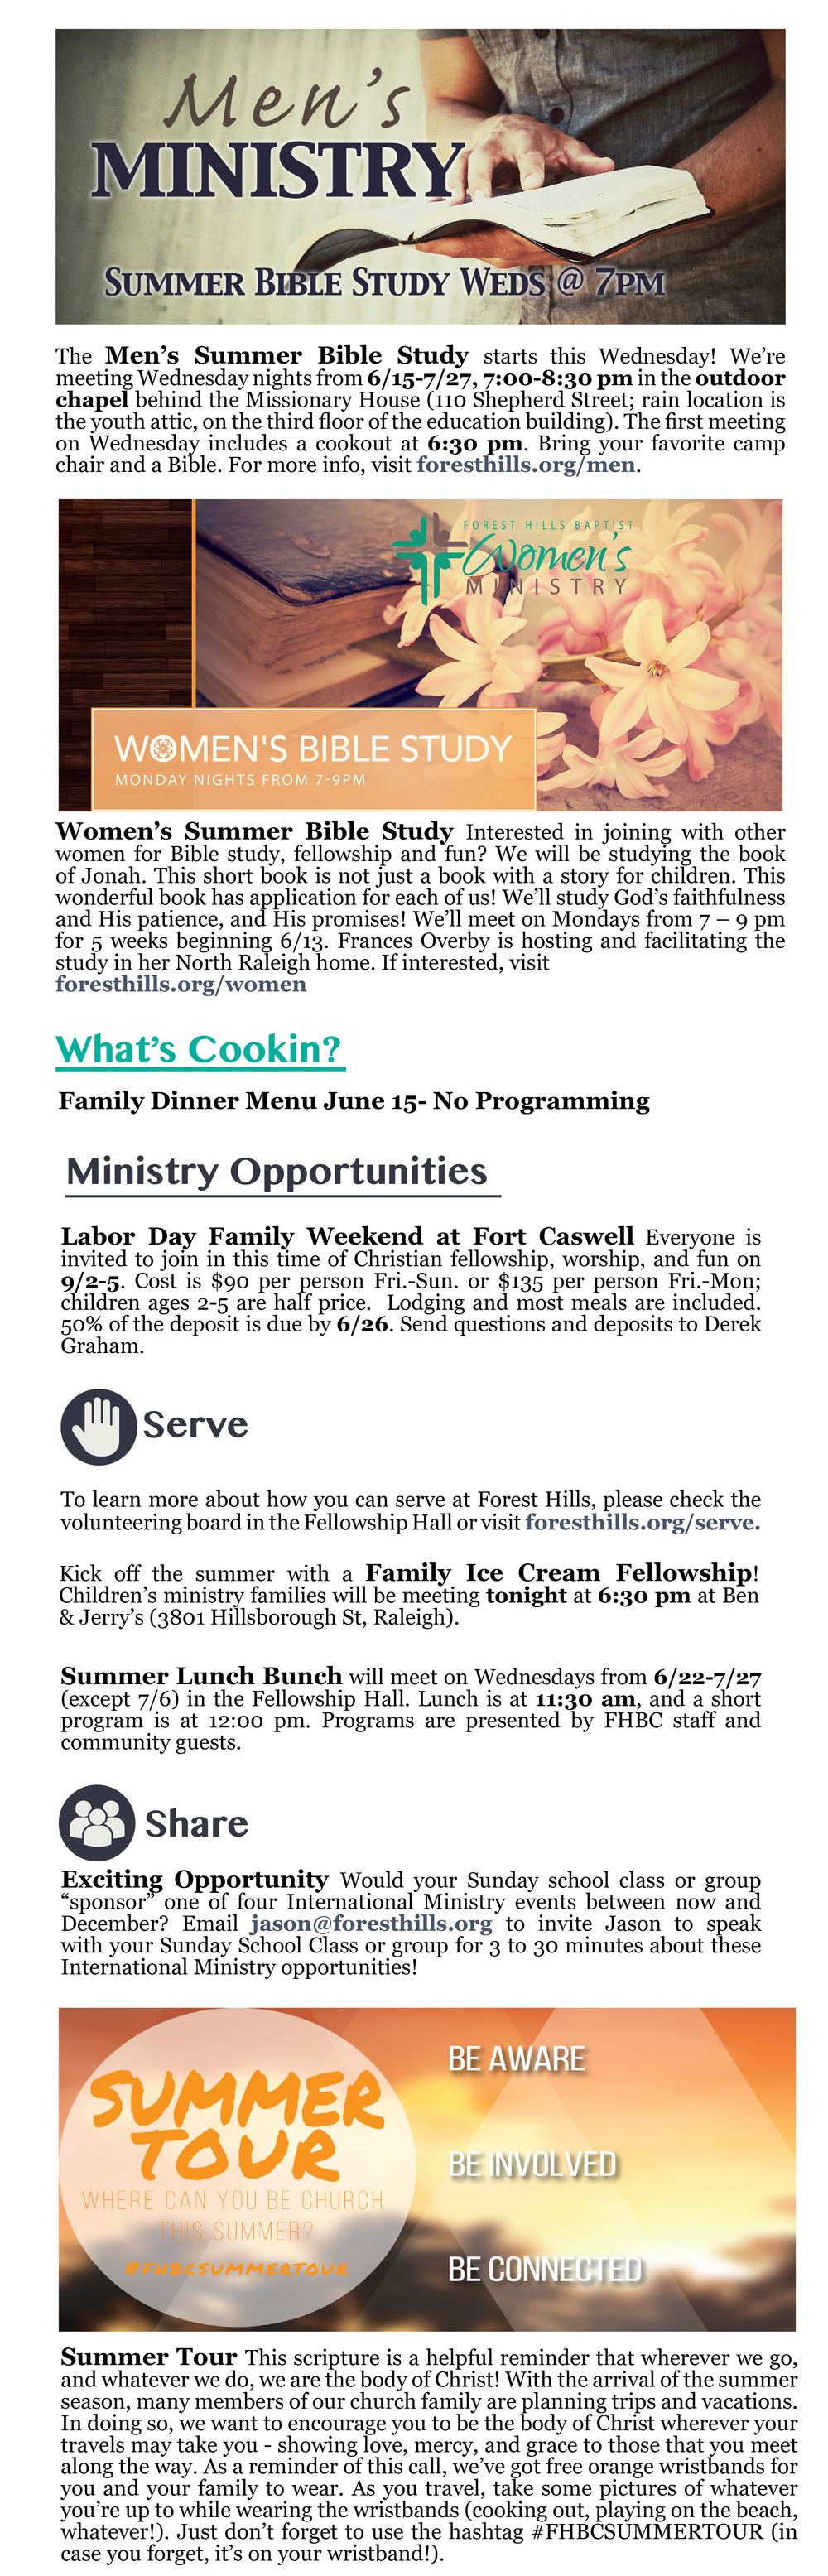 forest hills baptist church raleigh weekly update